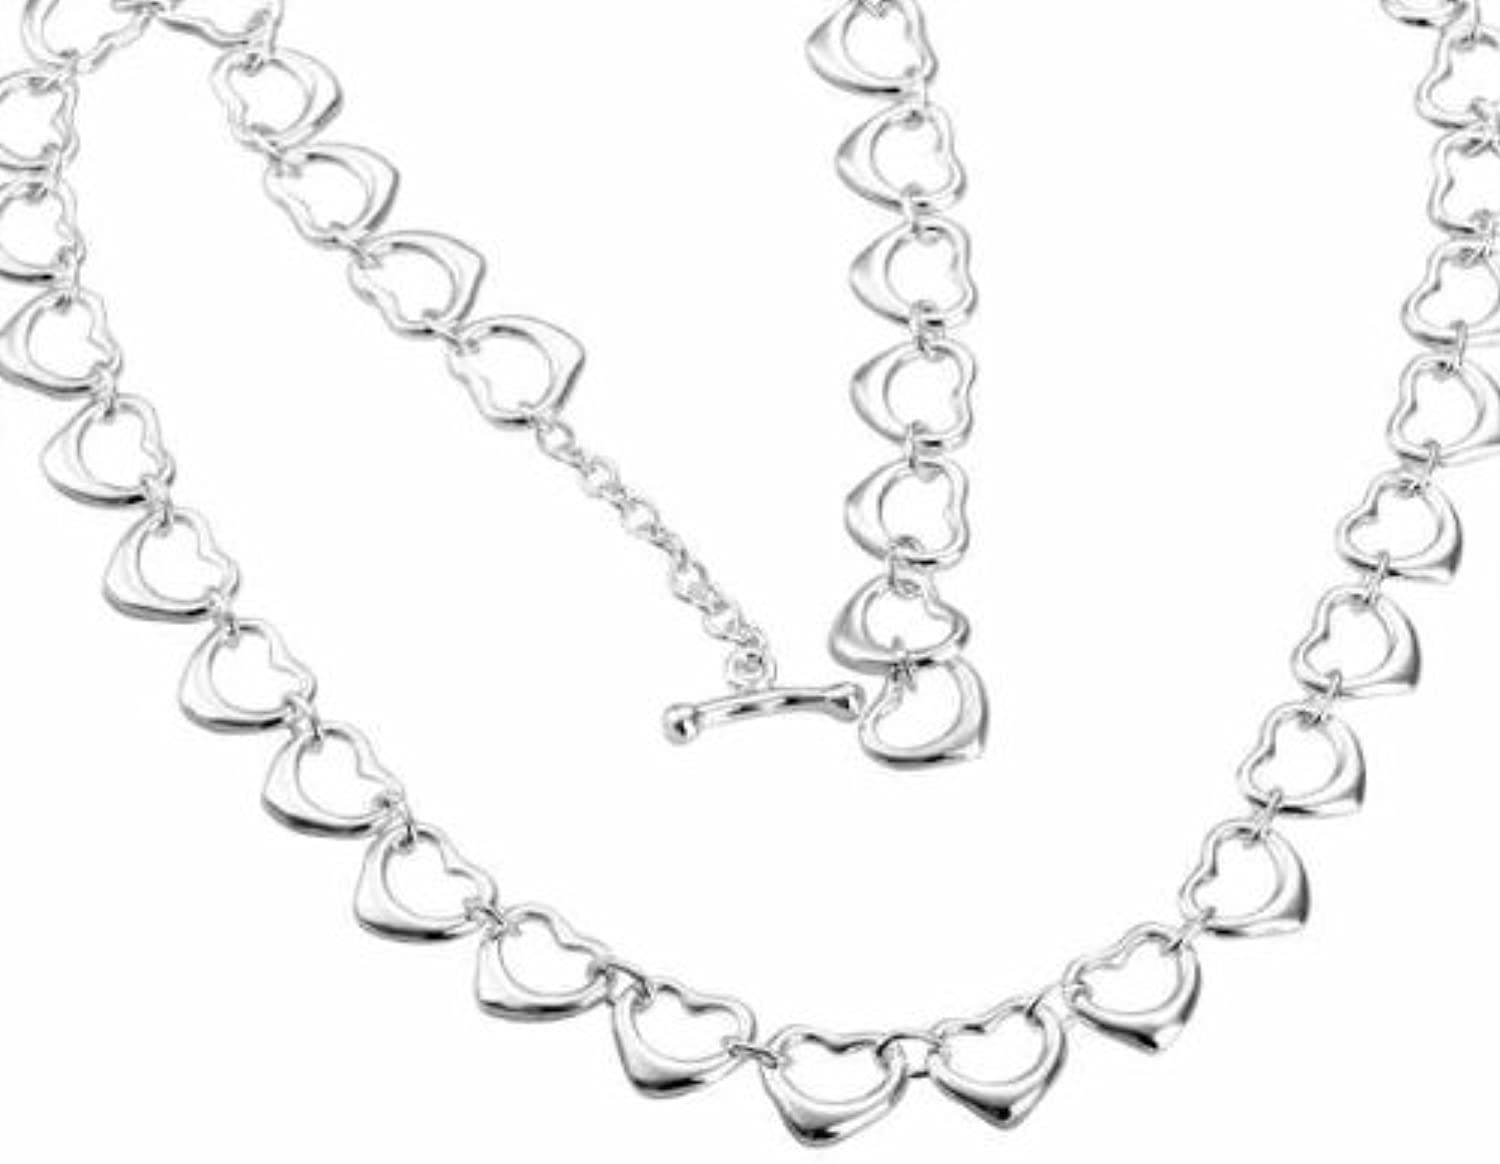 KDesign 925 Sterling Silver Slippy Hearts Links TO Buckle Torques Pendant Necklaces N178